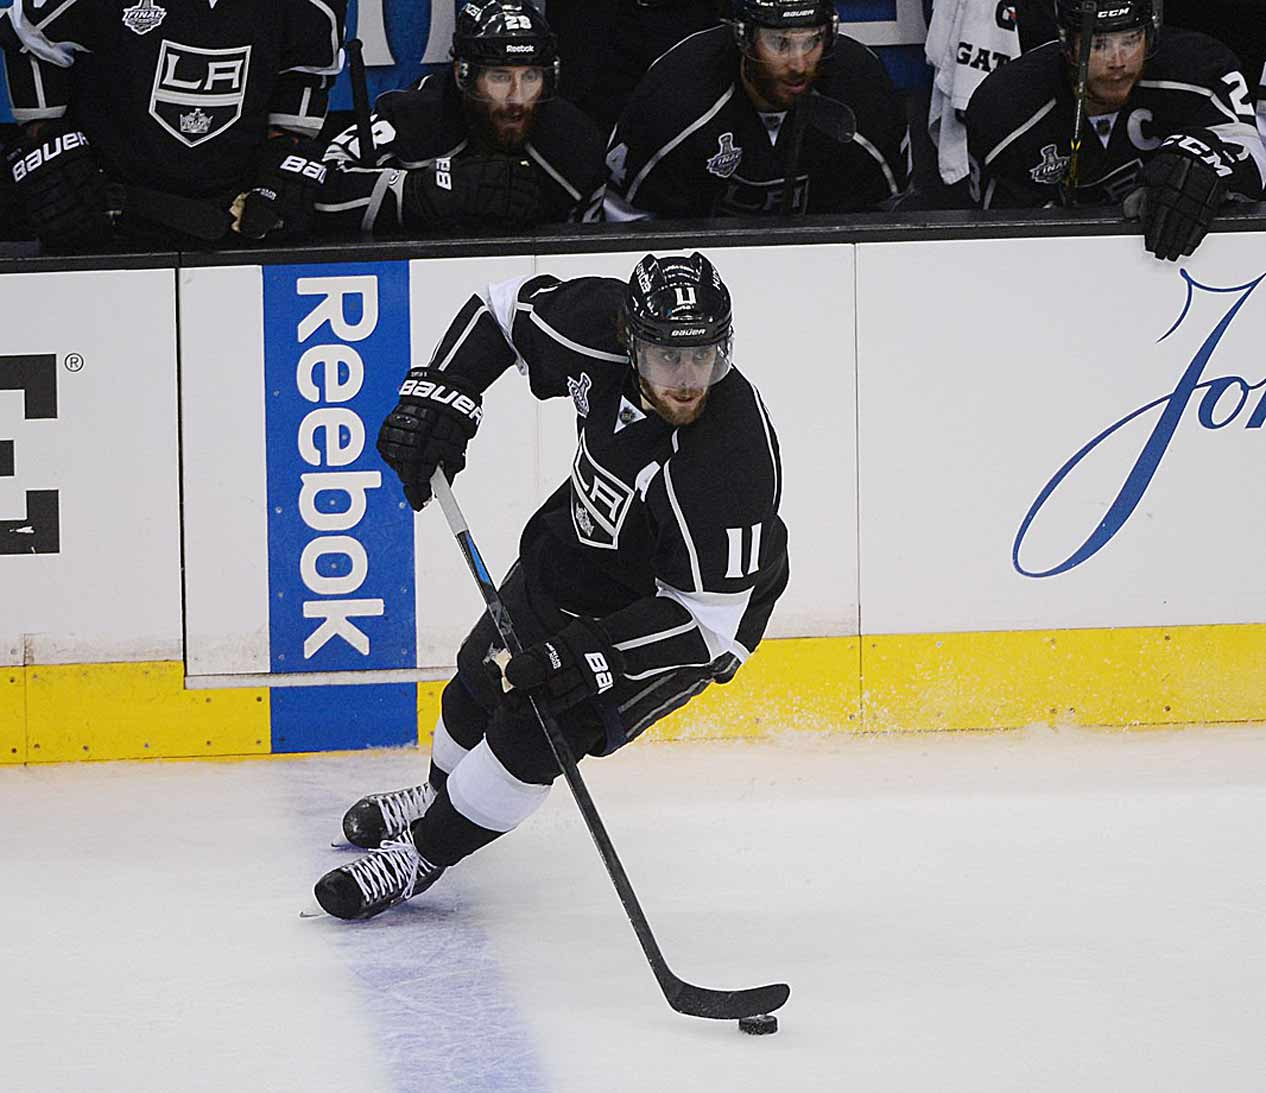 One of the NHL's most complete forwards, Kopitar is finally getting his just recognition. He led the league in playoff scoring during each of the Kings' championship seasons, totaling 46 points in 46 games in 2012 and '14, and was a finalist for the '14 Selke Trophy as the game's top two-way forward.